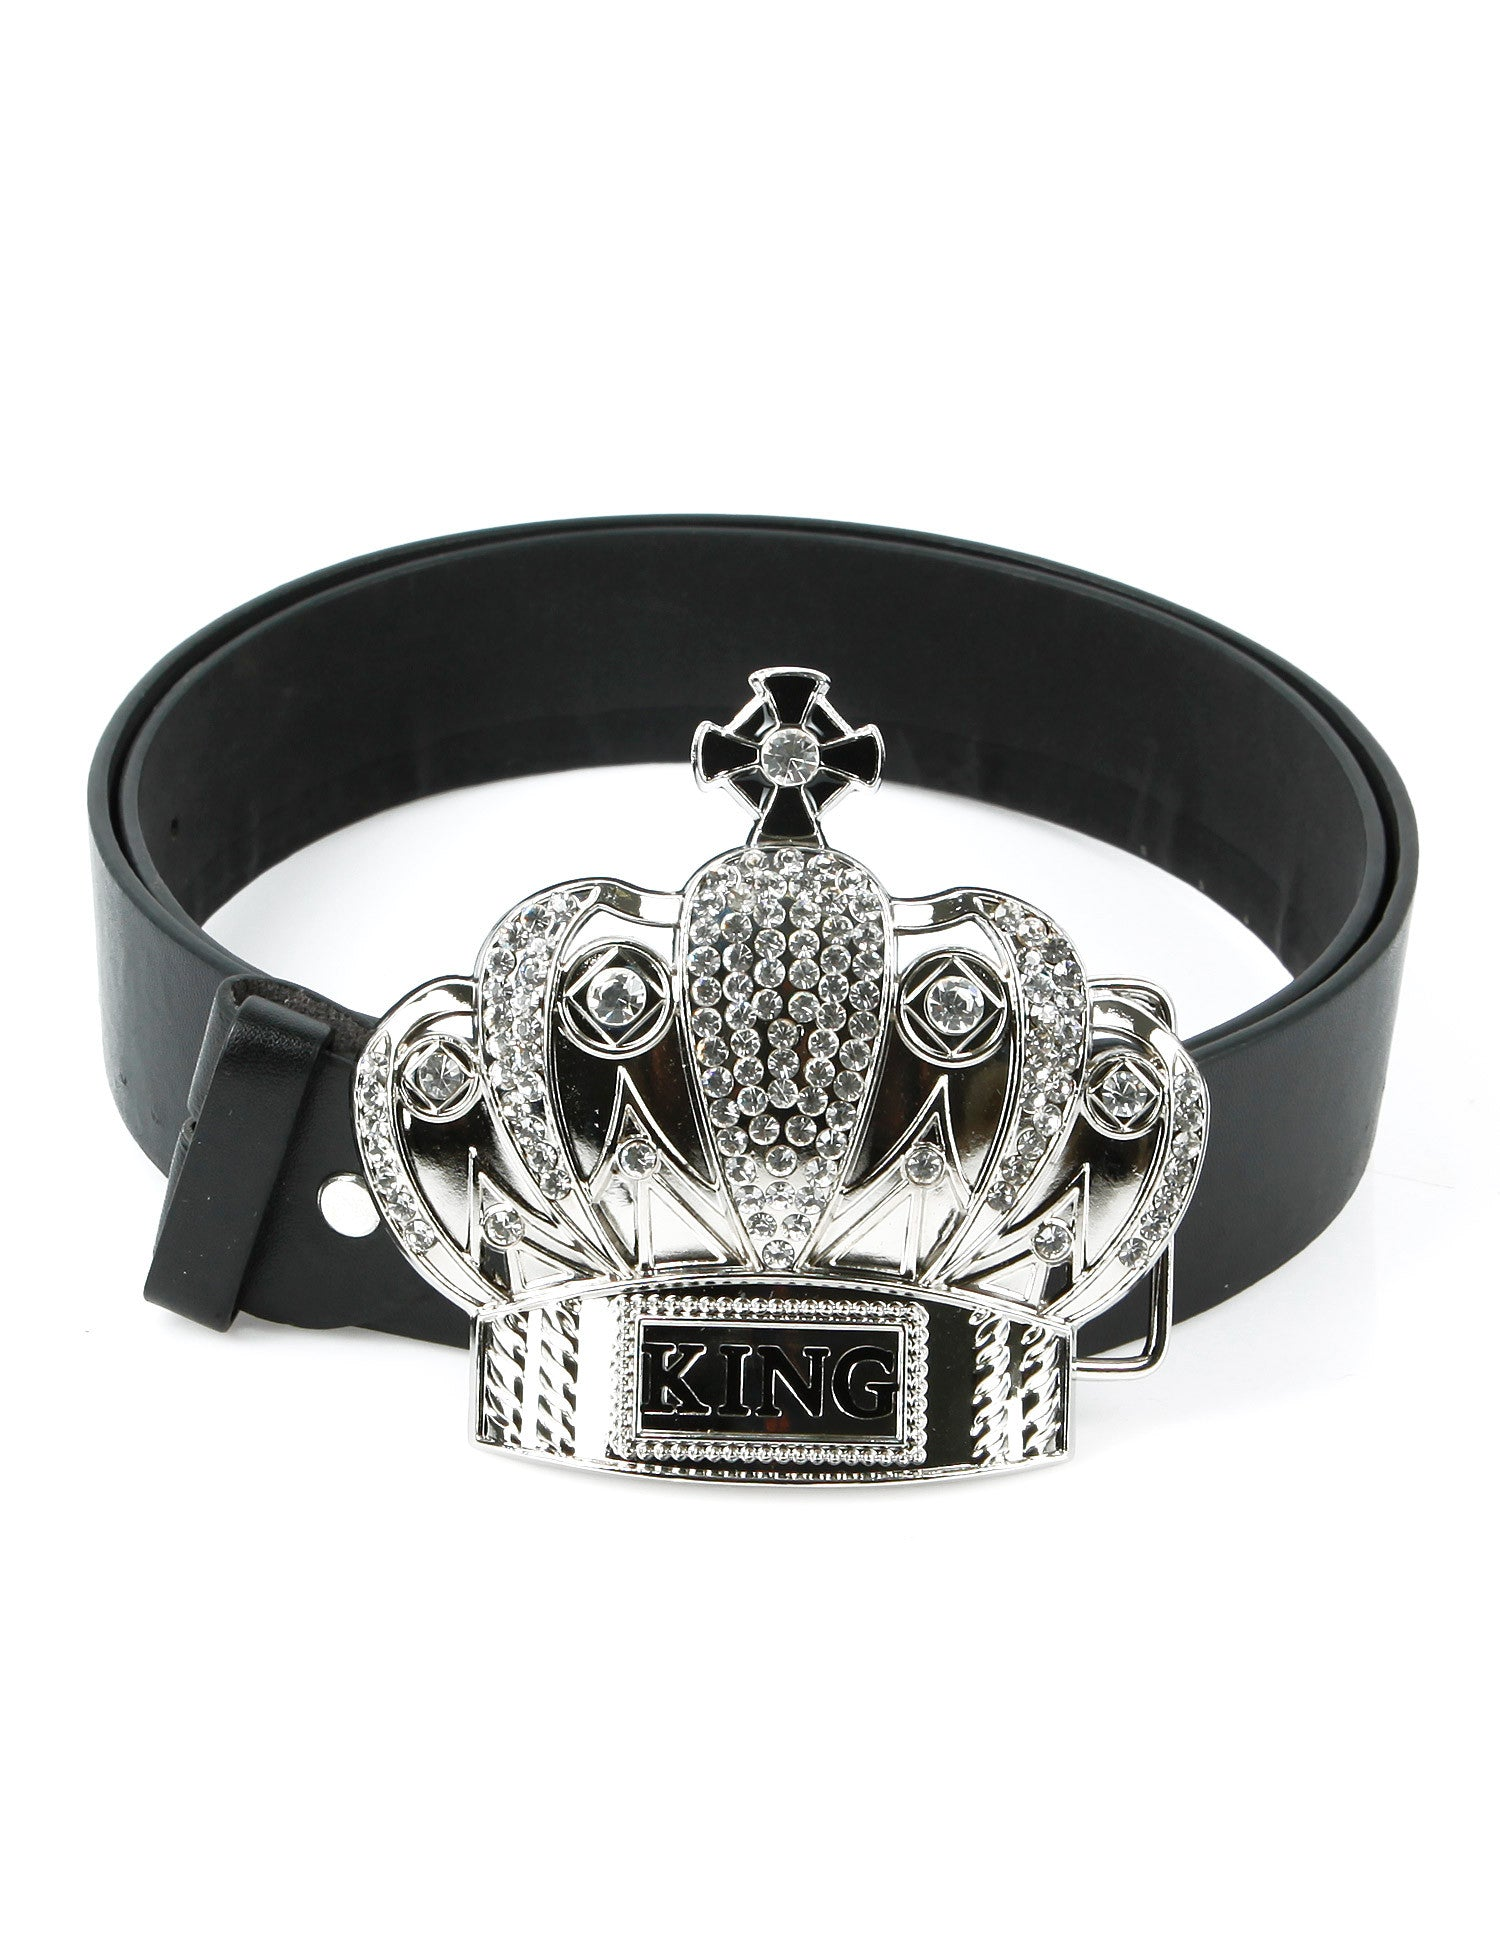 King Belt Buckle Silver